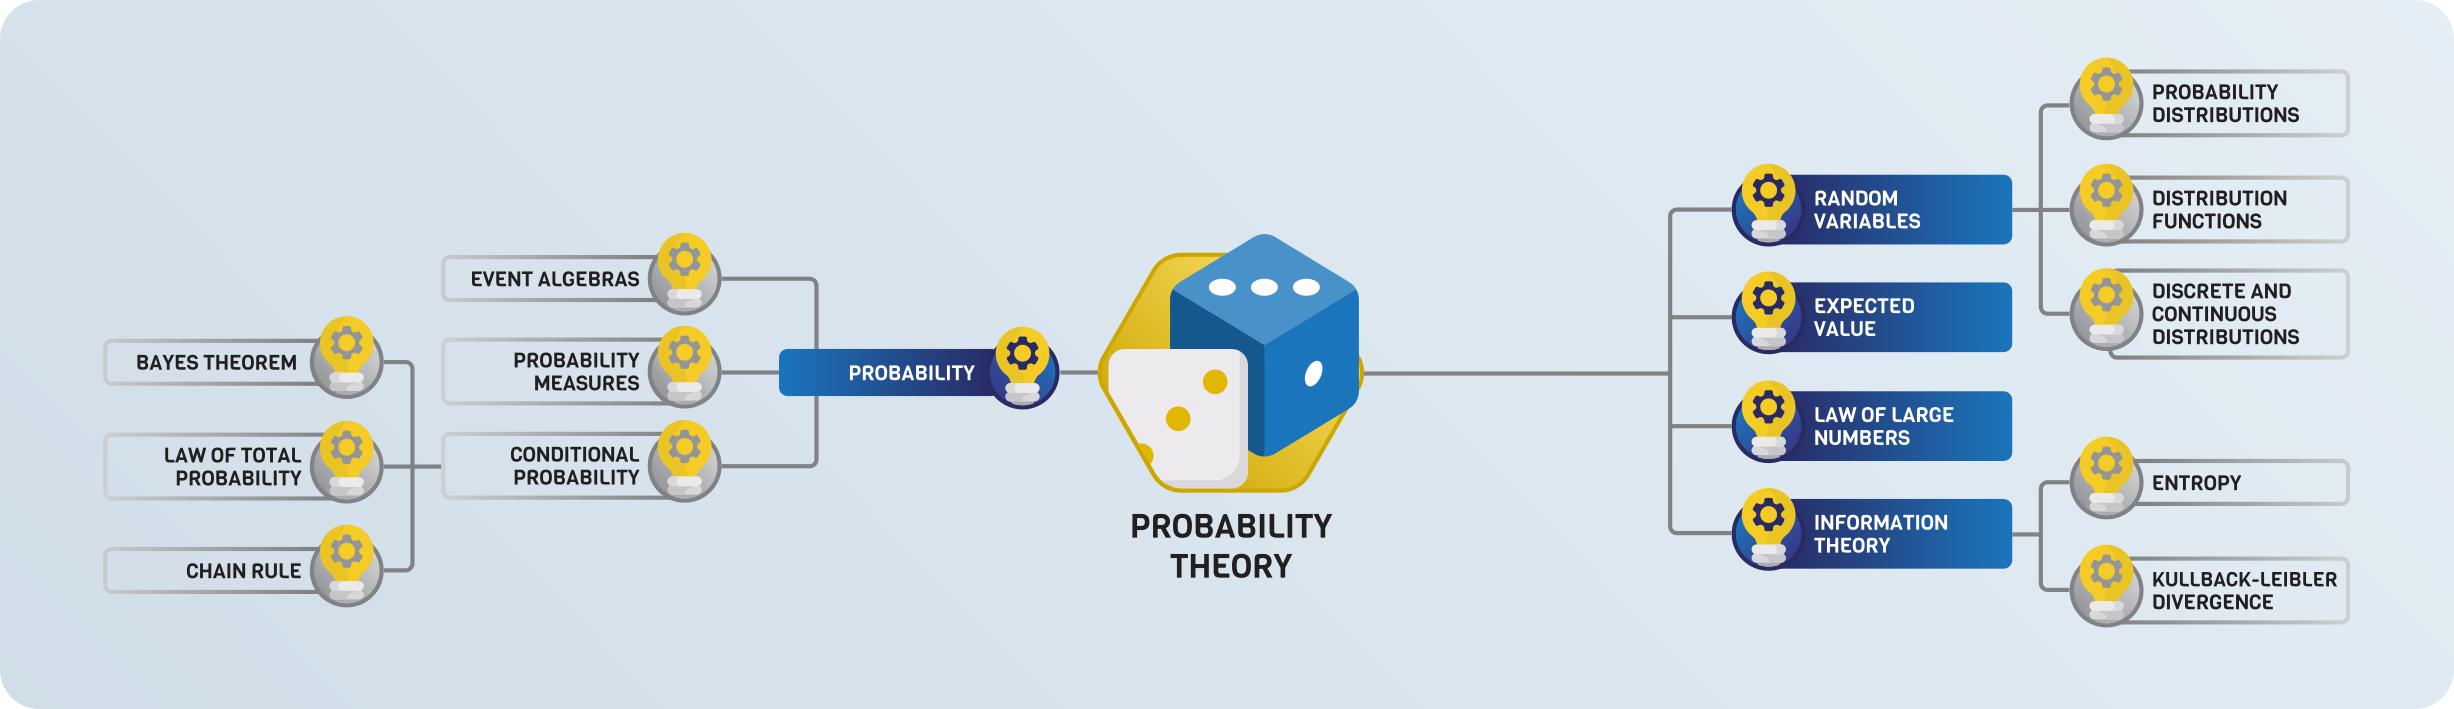 2021-08-roadmap-05-00-probability-theory.png